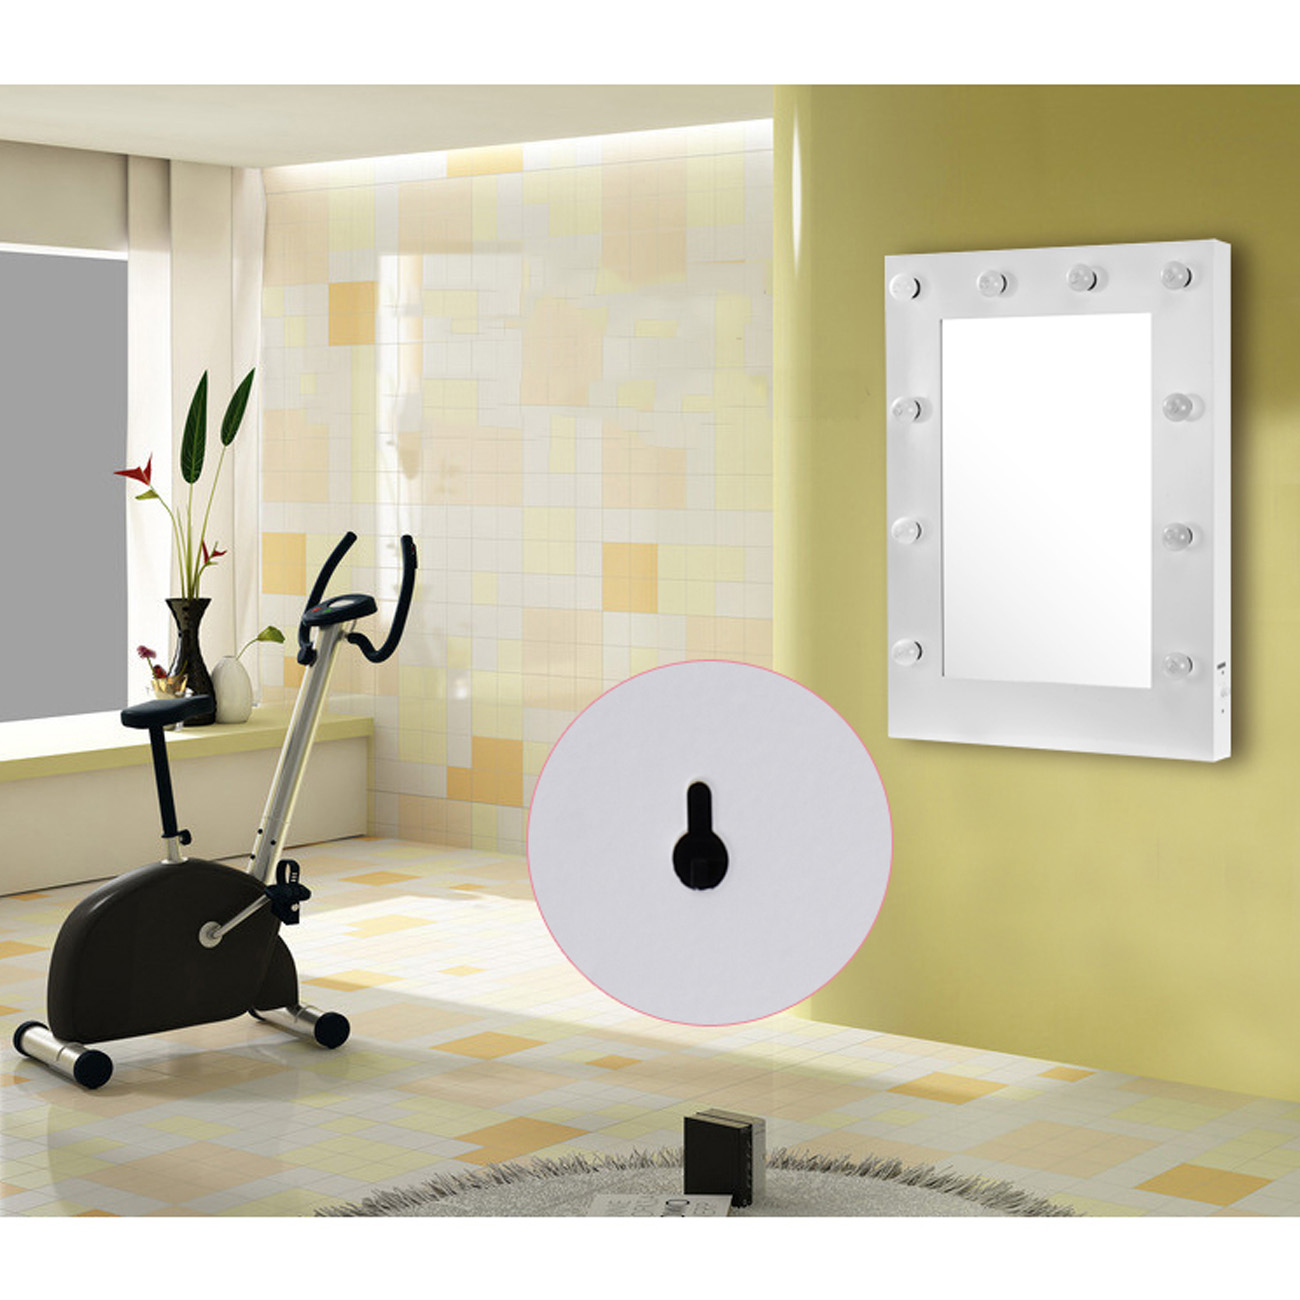 Chende White Hollywood Makeup Vanity Mirror With Light